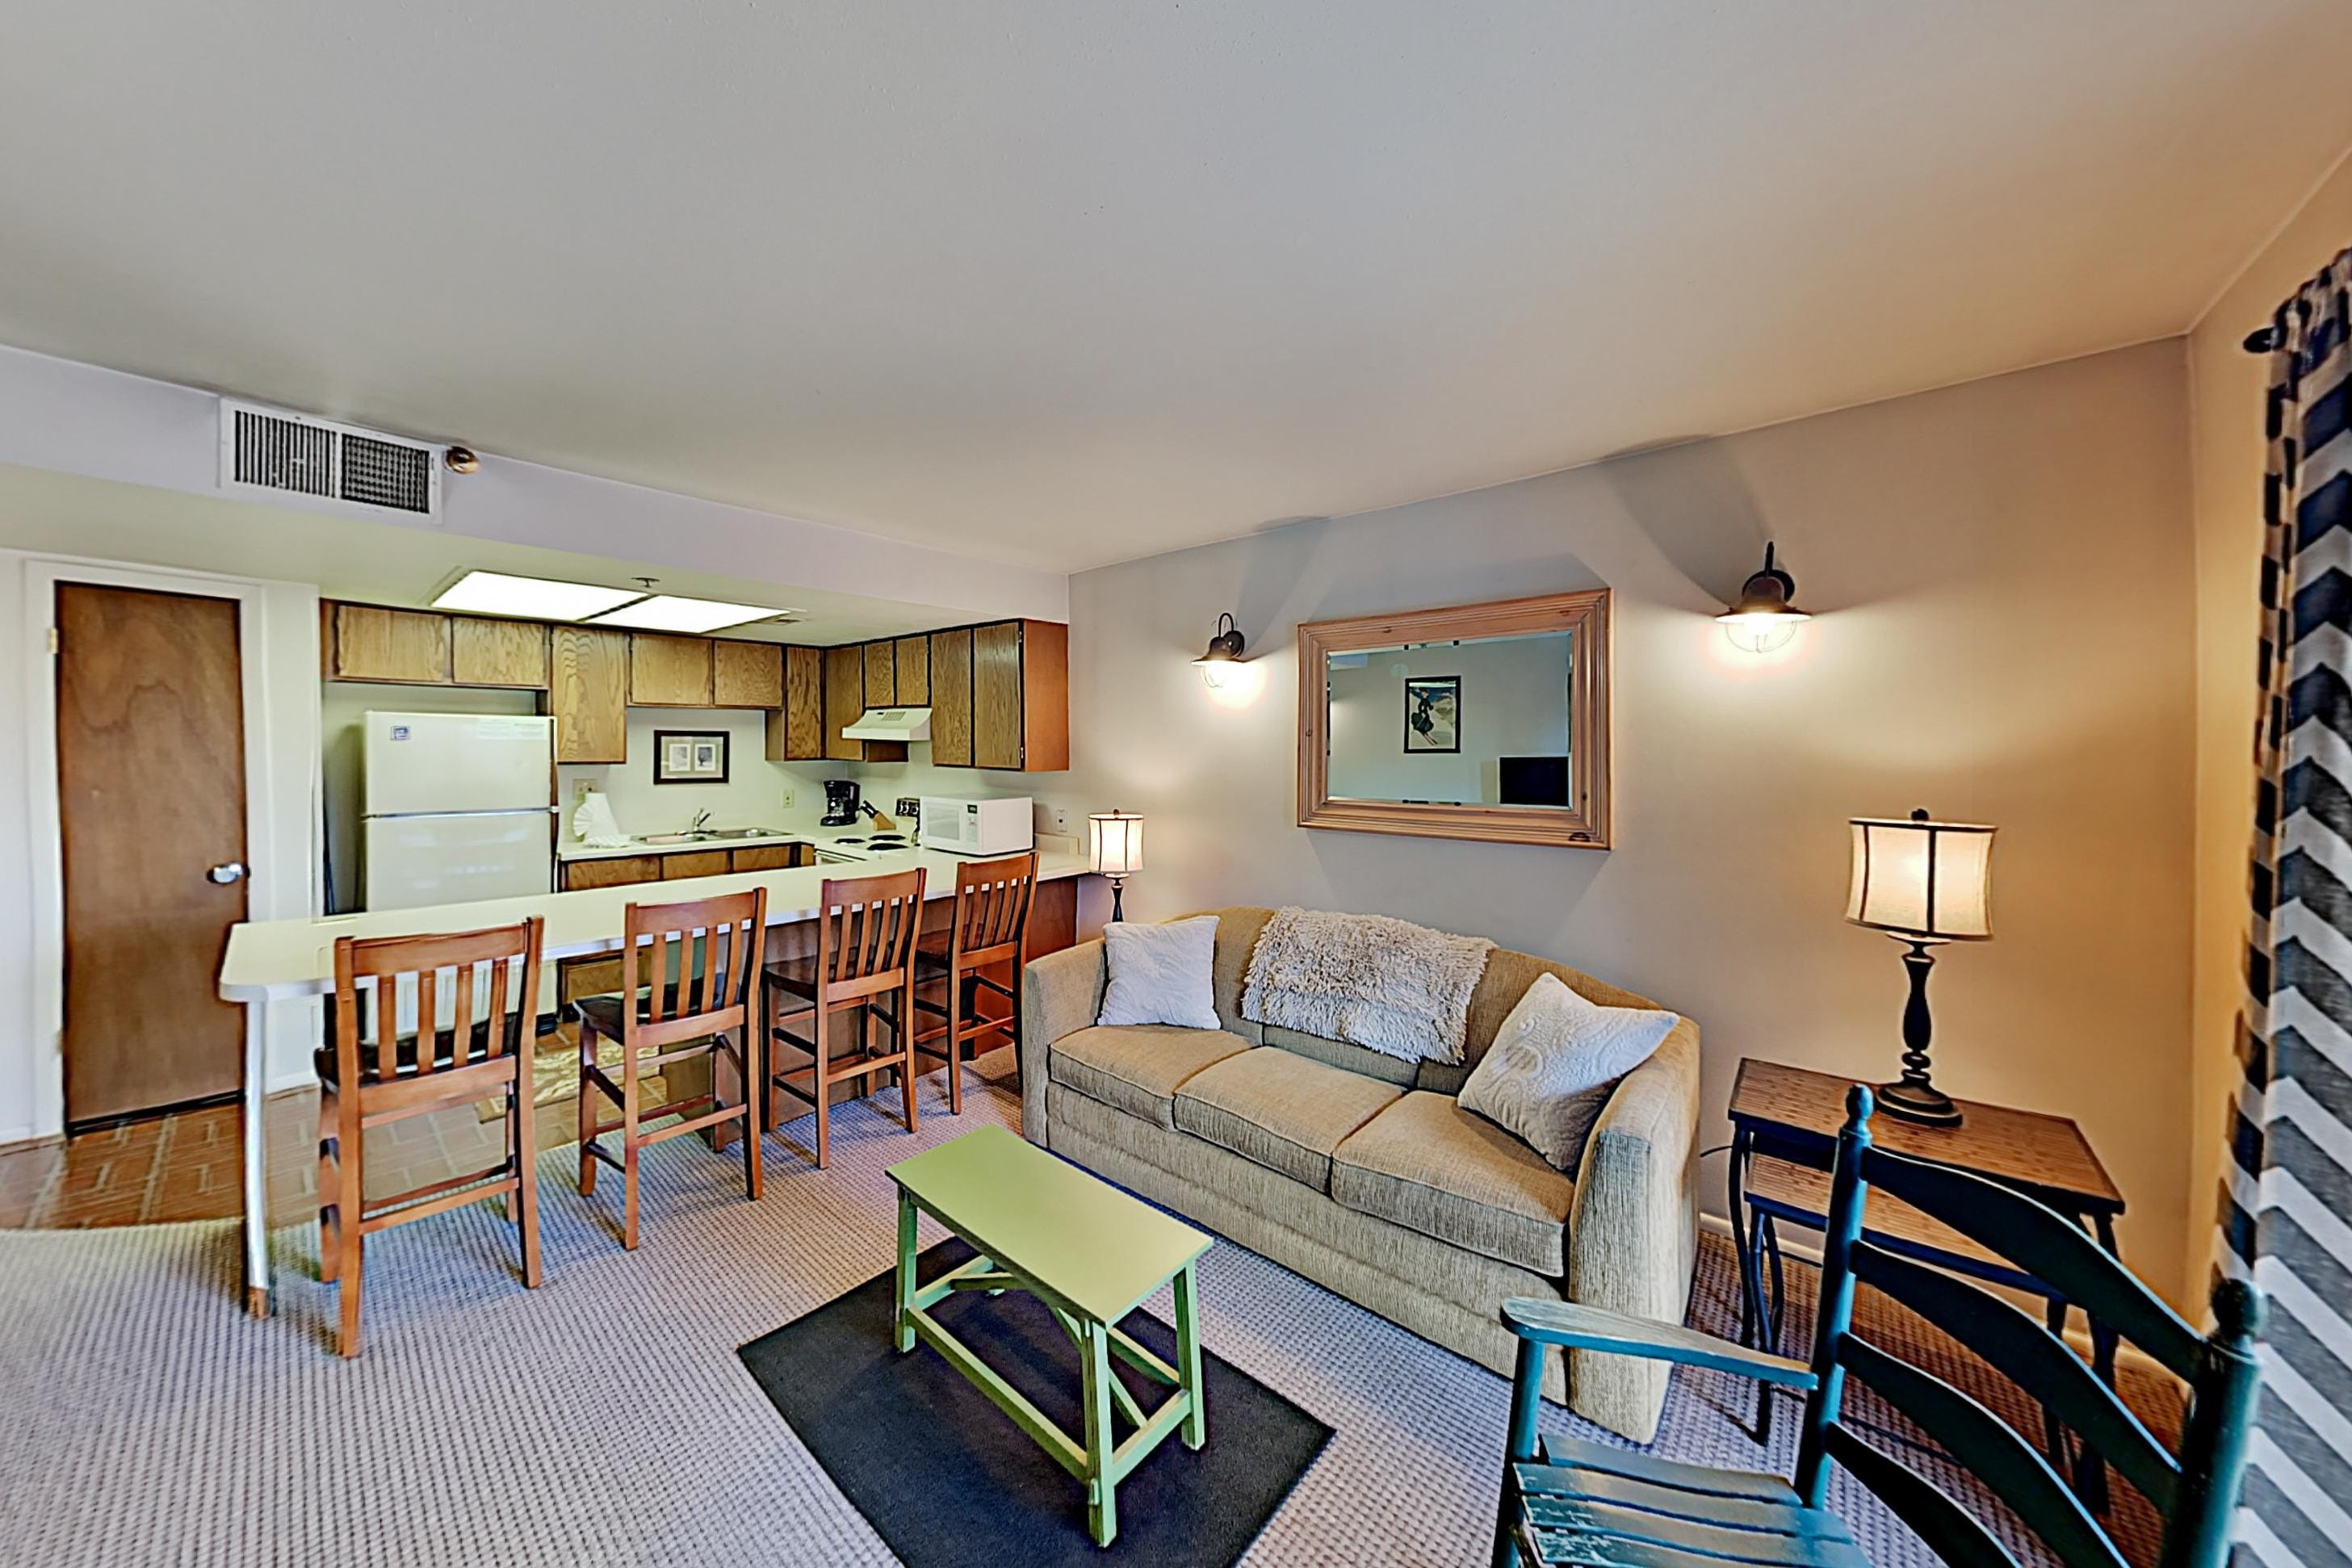 Welcome to Park City! This Powder Pointe condo is professionally managed by TurnKey Vacation Rentals.